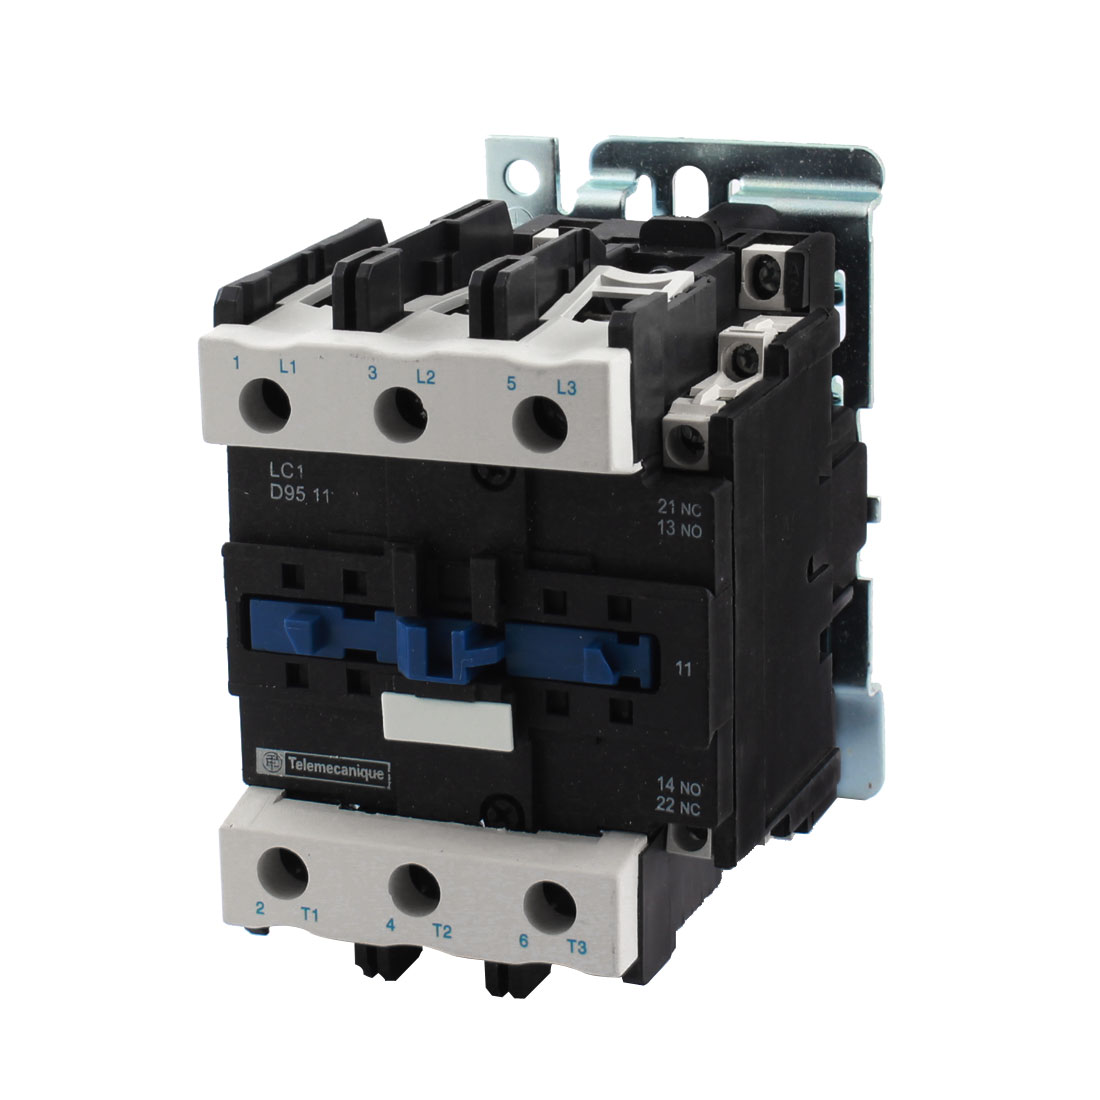 LC1-D9511 690V 125A 220V Coil Voltage 35mm 75mm DIN Rail Mounting 3-Phase 6 Screw Terminals 1NO 1NC AC Safety Electric Circuit Control Power Contactor